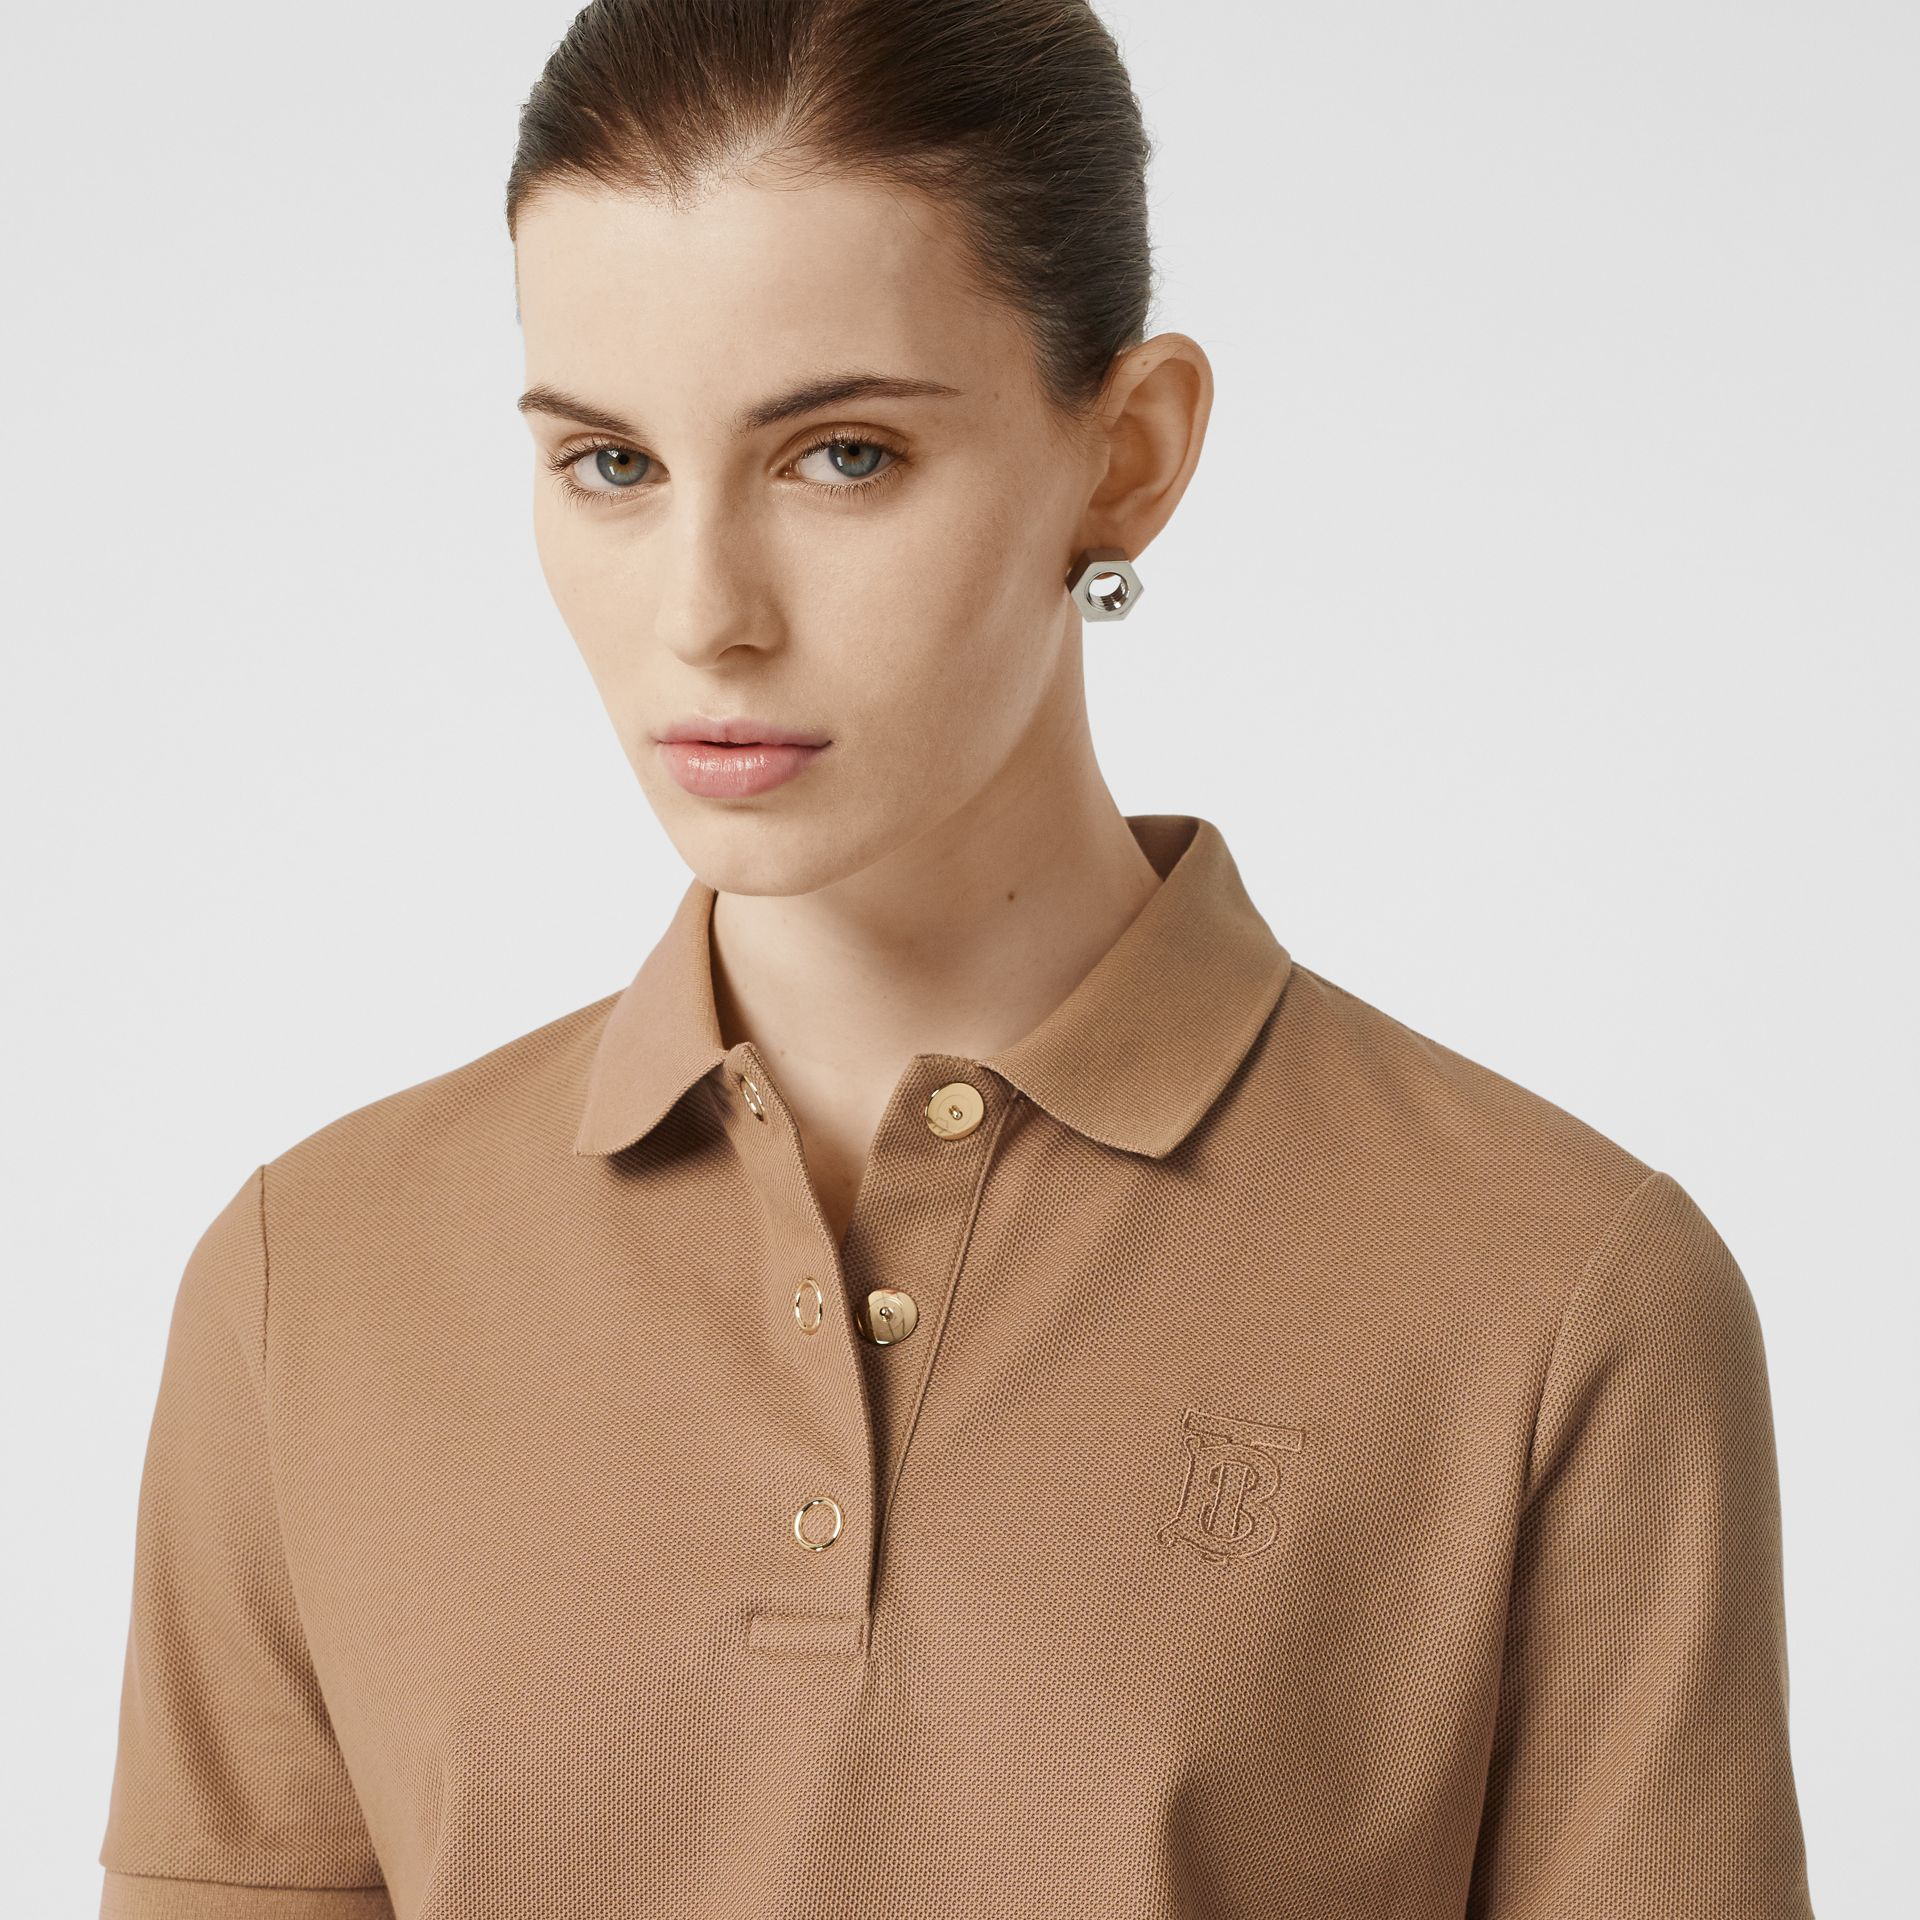 Monogram Motif Cotton Piqué Polo Shirt in Camel - Women | Burberry - gallery image 1